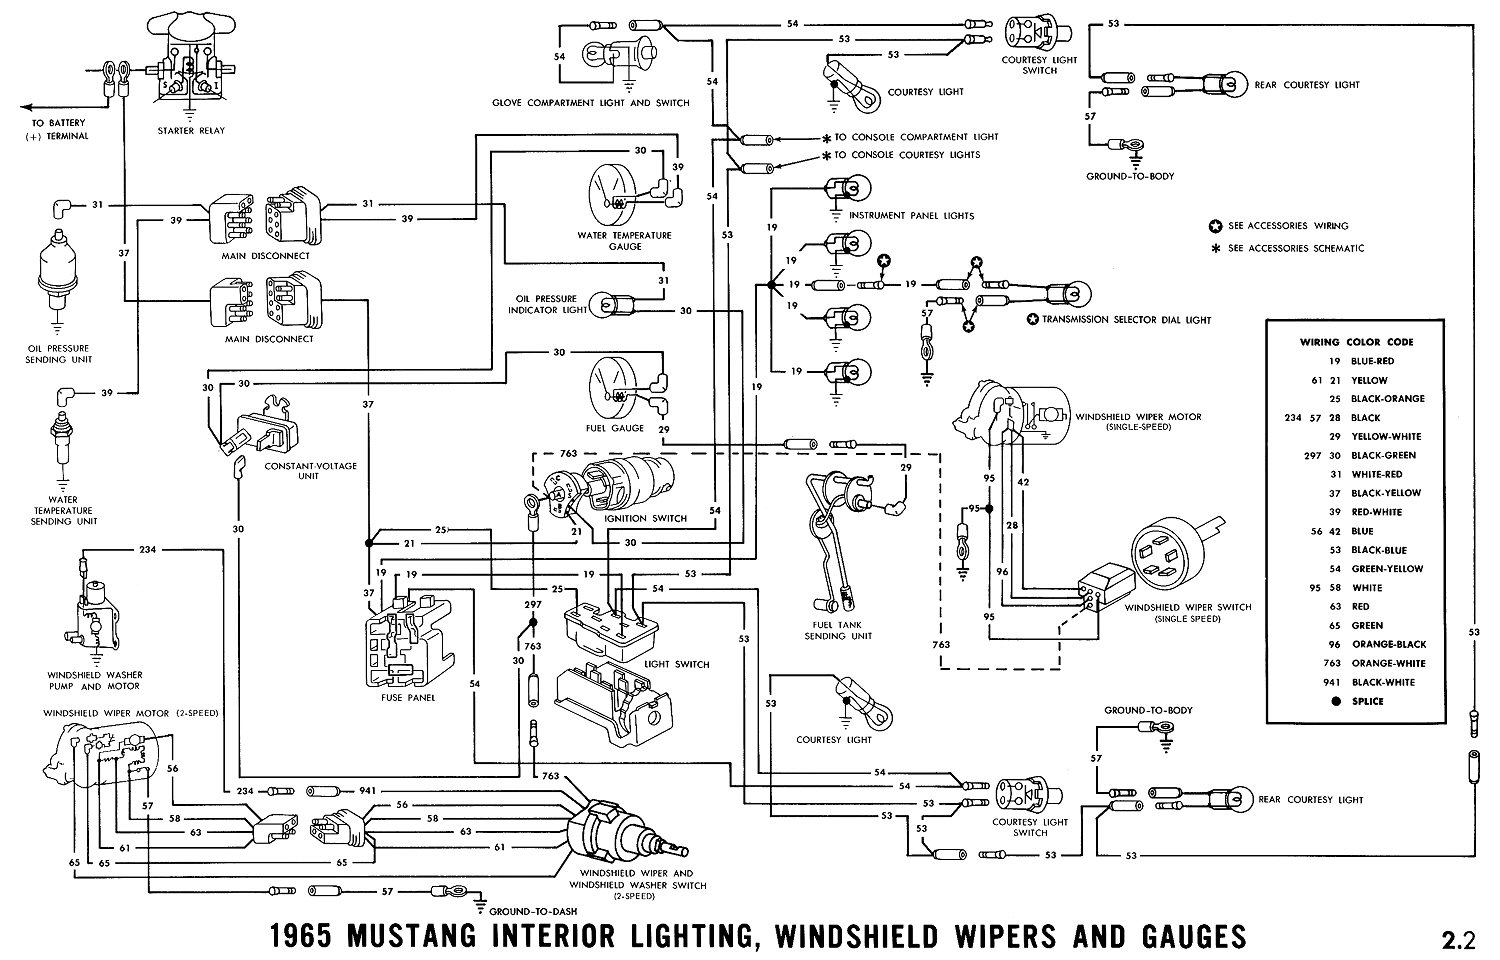 hight resolution of 65 mustang headlamp switch wiring schema wiring diagram 1965 mustang headlight switch wiring diagram 1965 mustang